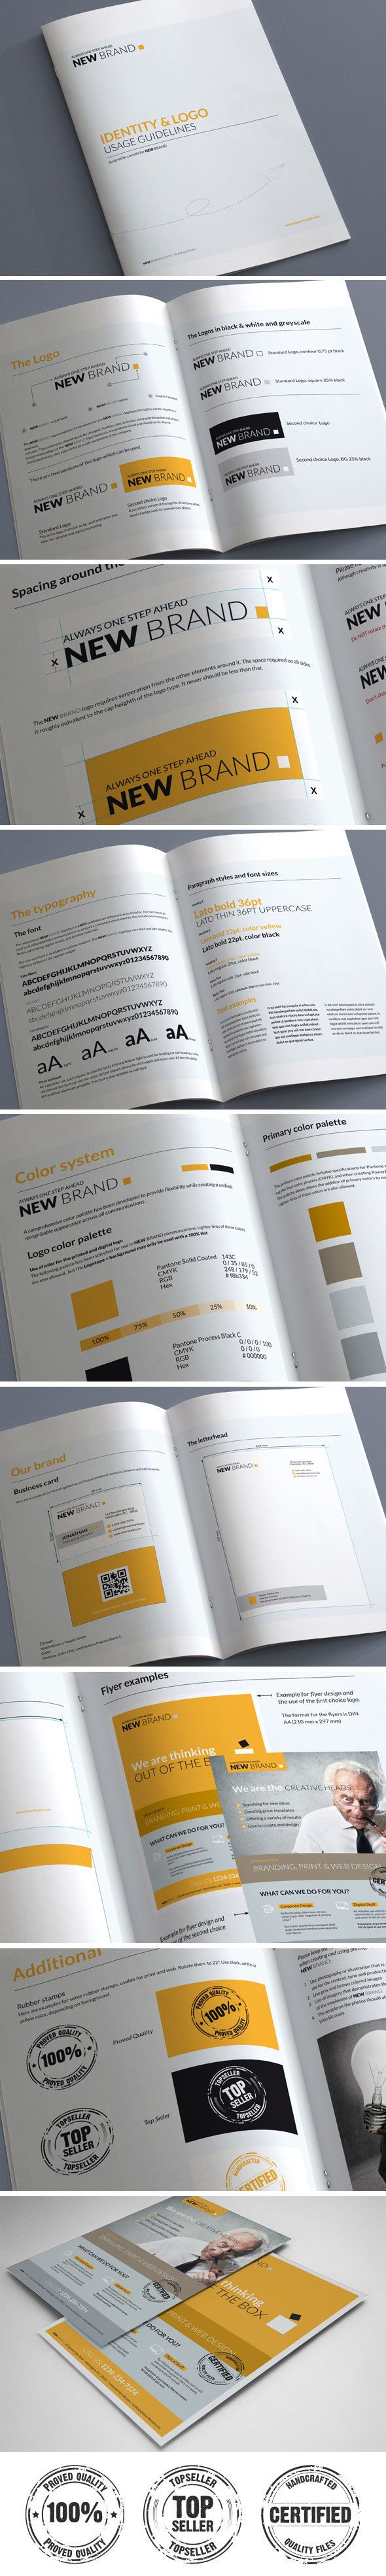 Create Engaging Visualization With Brand New Sankey Manual Guide